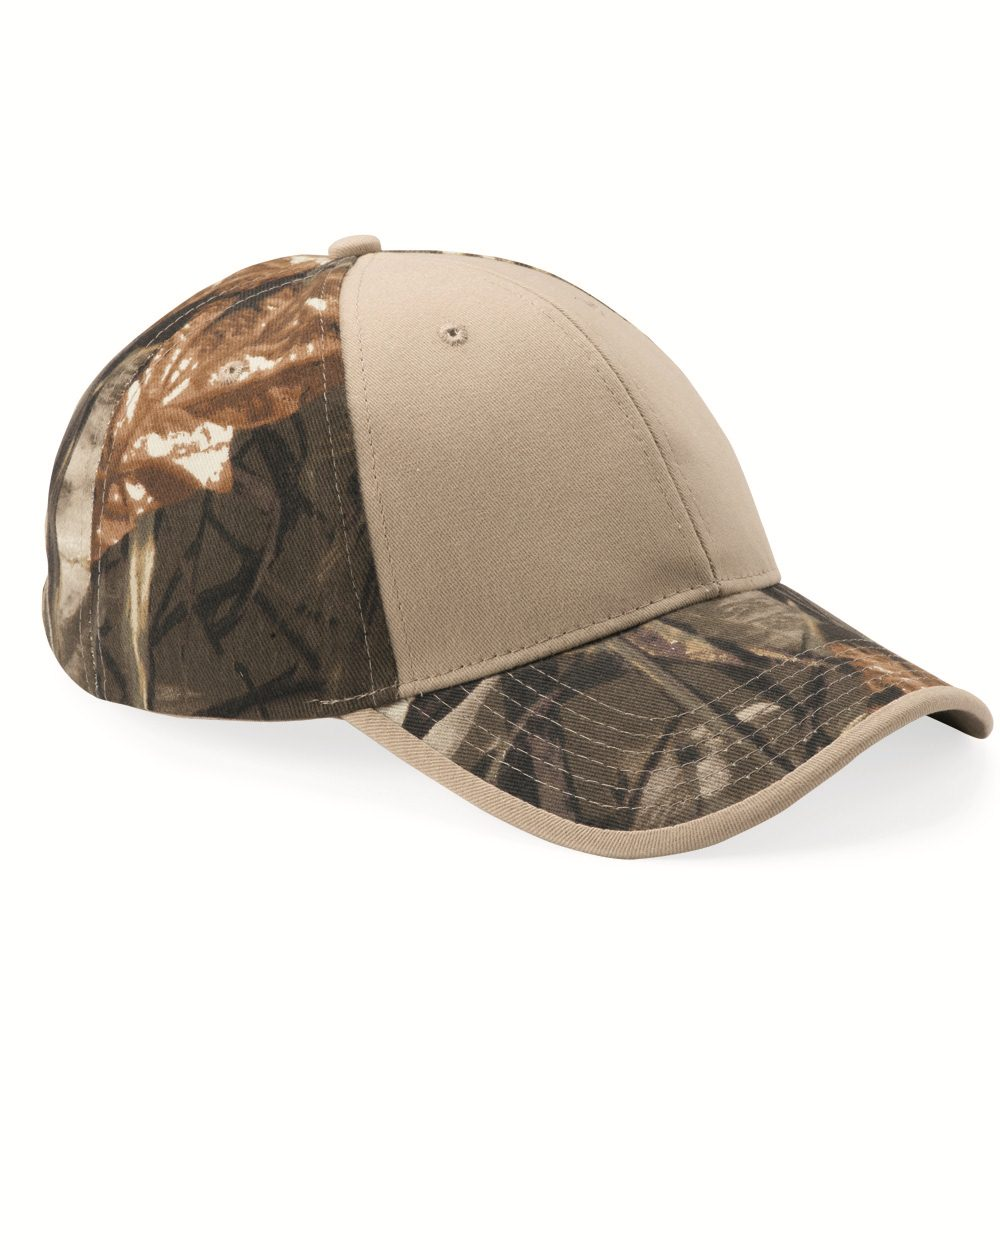 KATI LC102 Solid Front Camouflage Cap